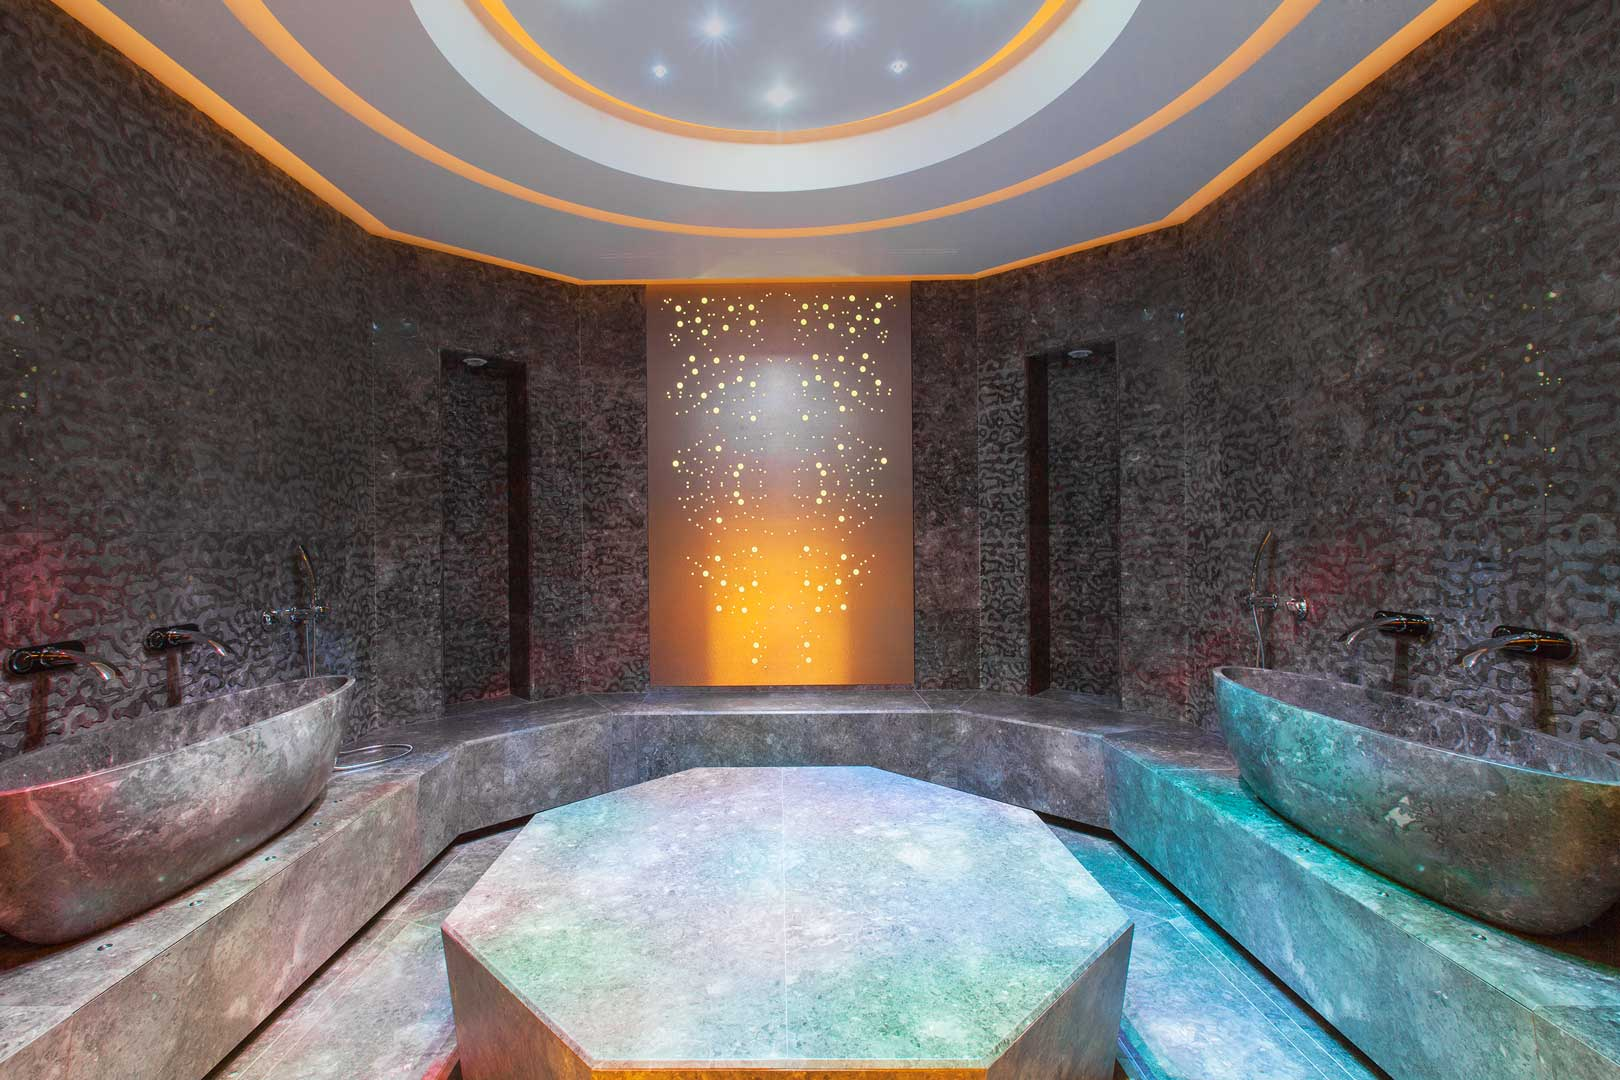 Shiseido Spa Milan | Flawless Milano - The Lifestyle Guide